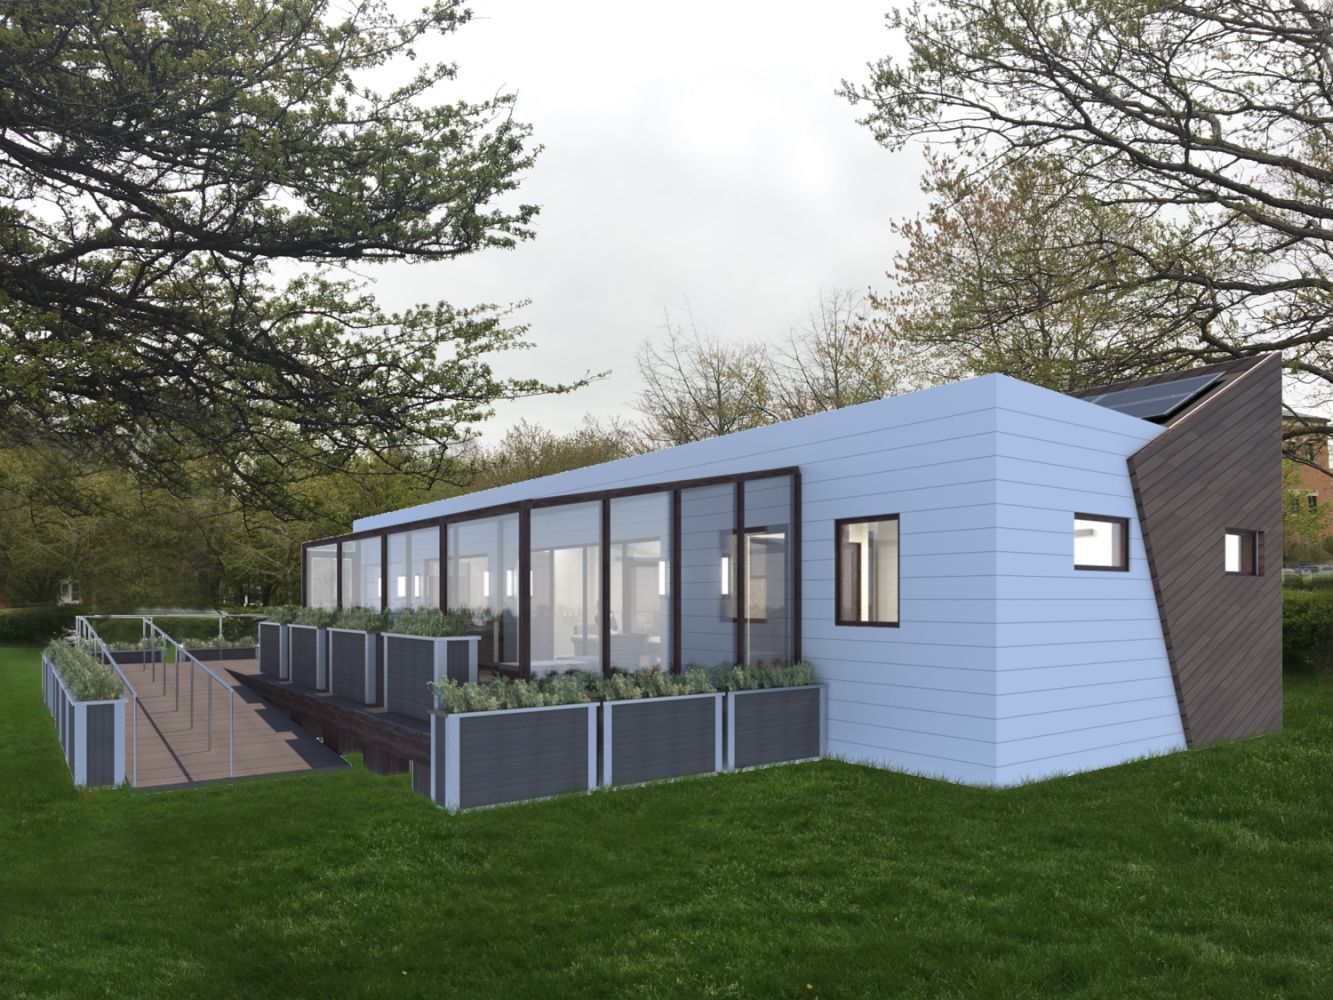 House by Northwestern is NU's first entry to the U.S. Department of Energy Solar Decathlon. The team placed sixth Sunday after two years of preparation.